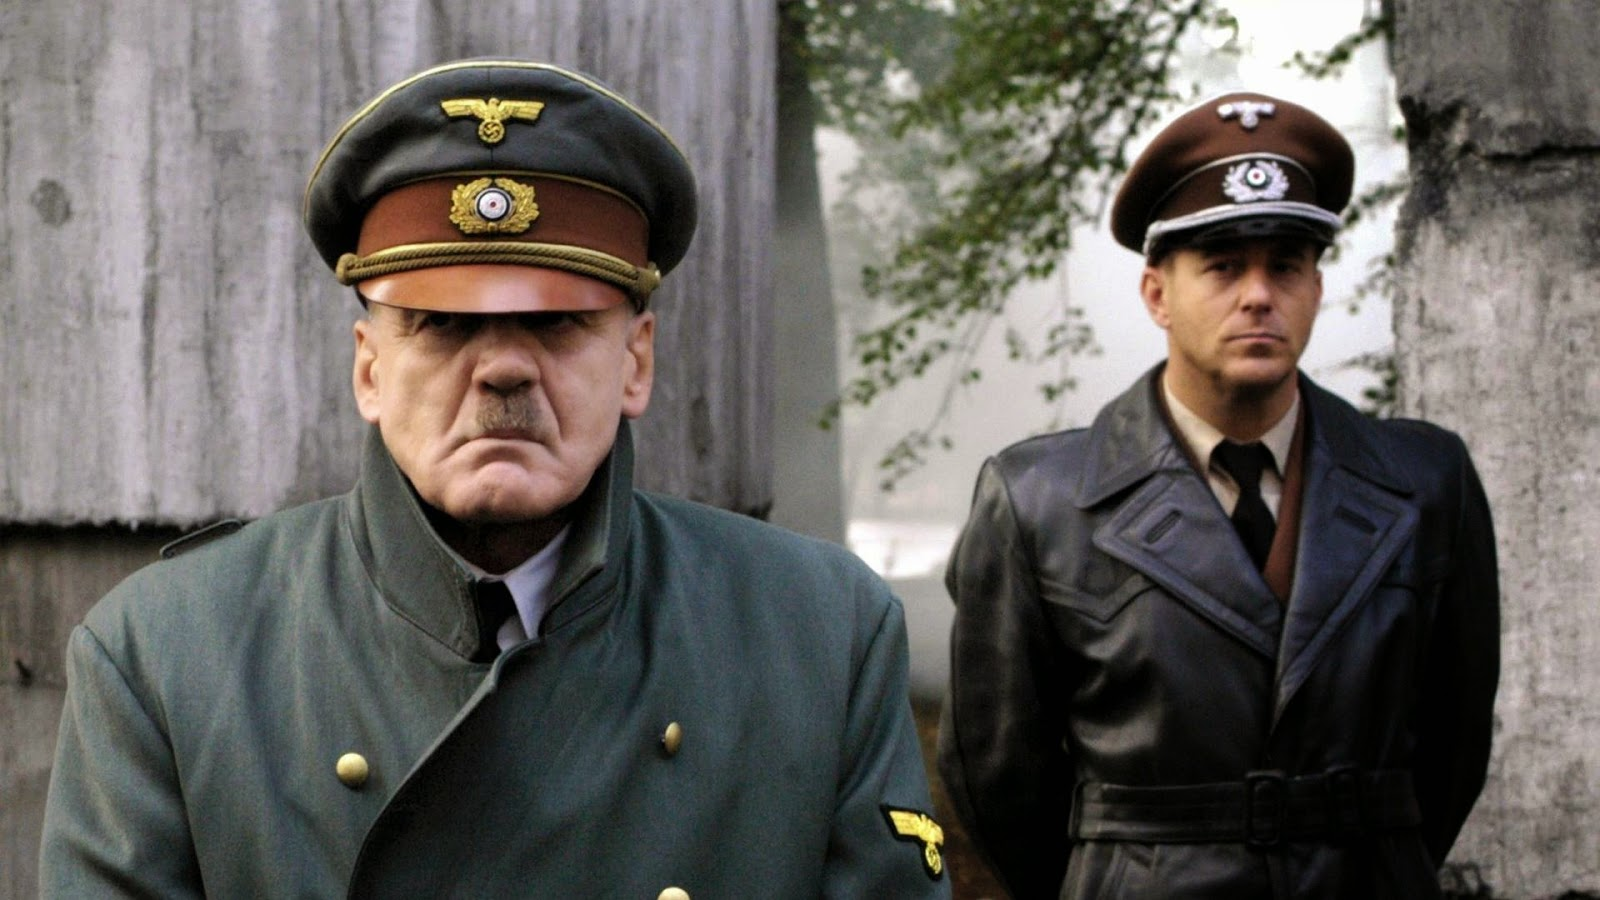 11 Anti-war And Anti-fascism Movies You Really Have To Watch - Downfall